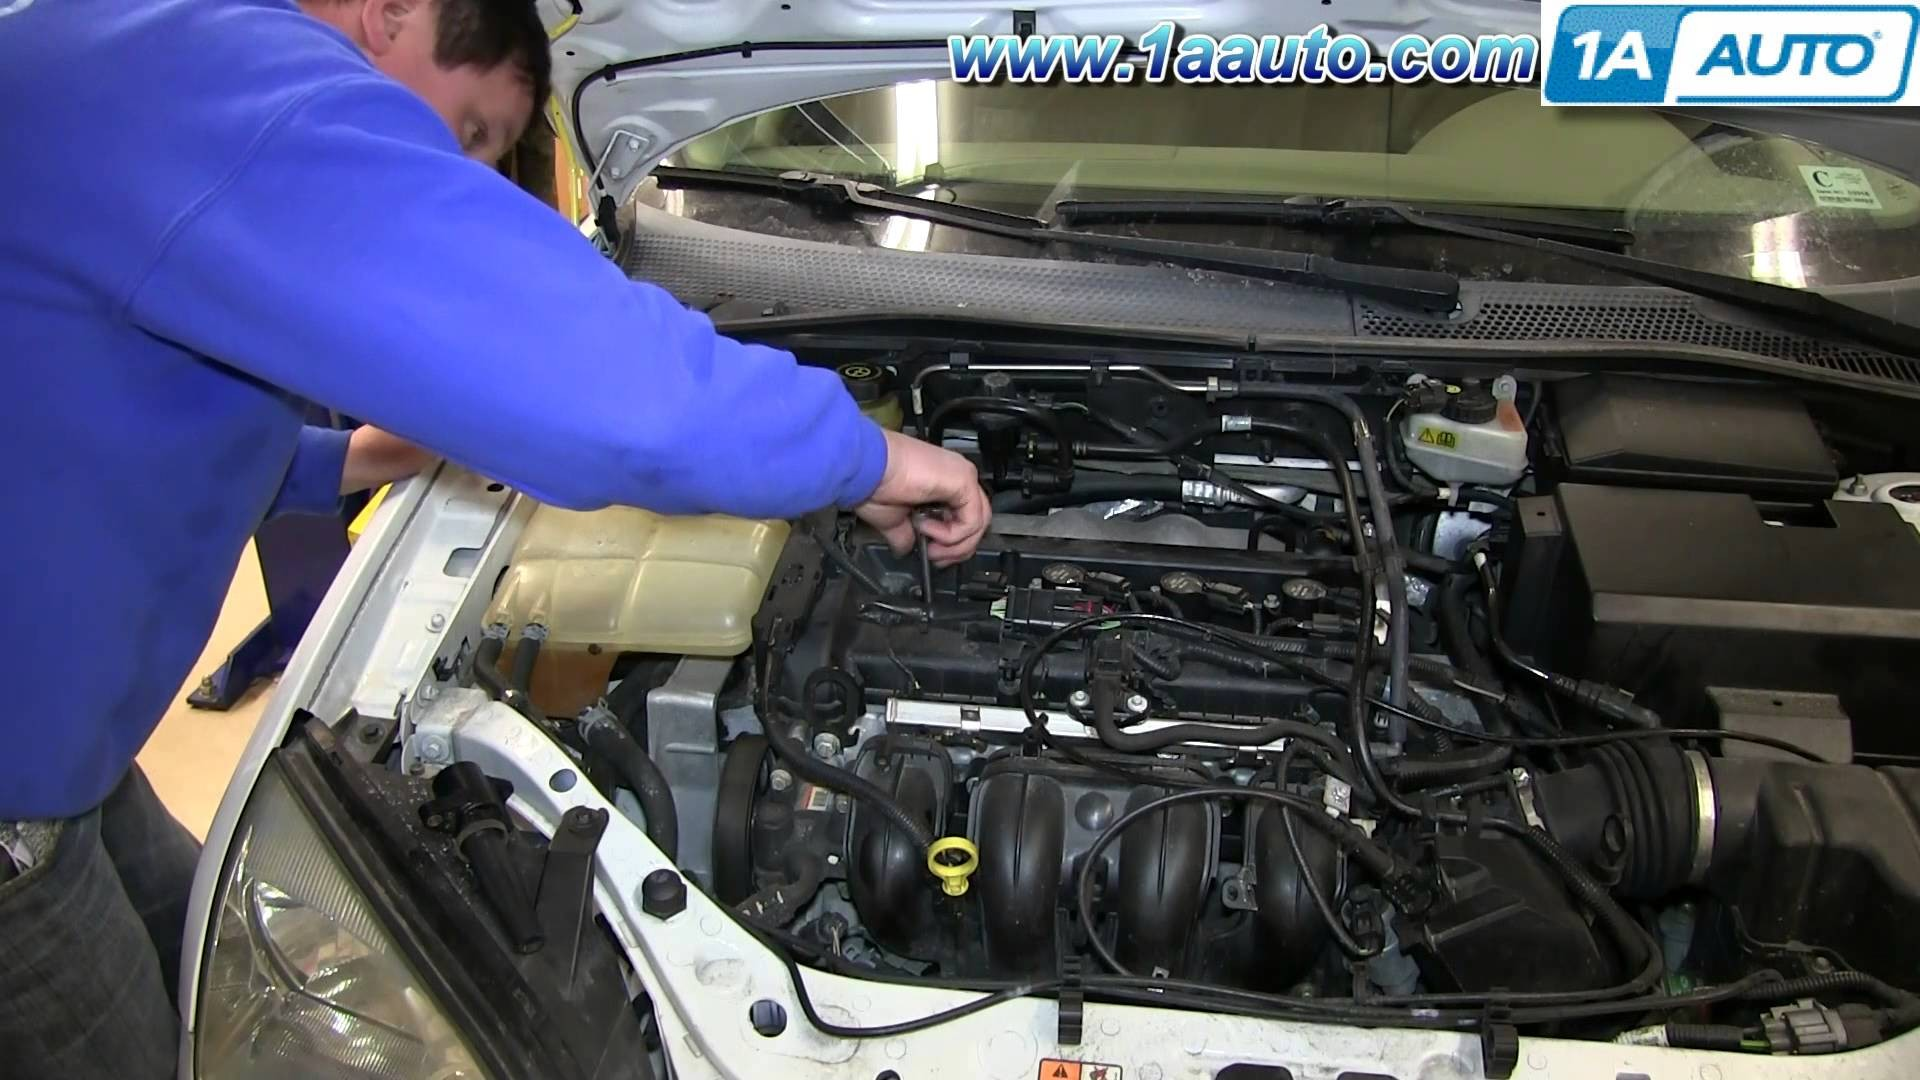 2002 ford focus zetec engine diagram how to install replace spark 2002 ford focus zetec engine diagram how to install replace spark plugs 2 0l ford focus publicscrutiny Image collections